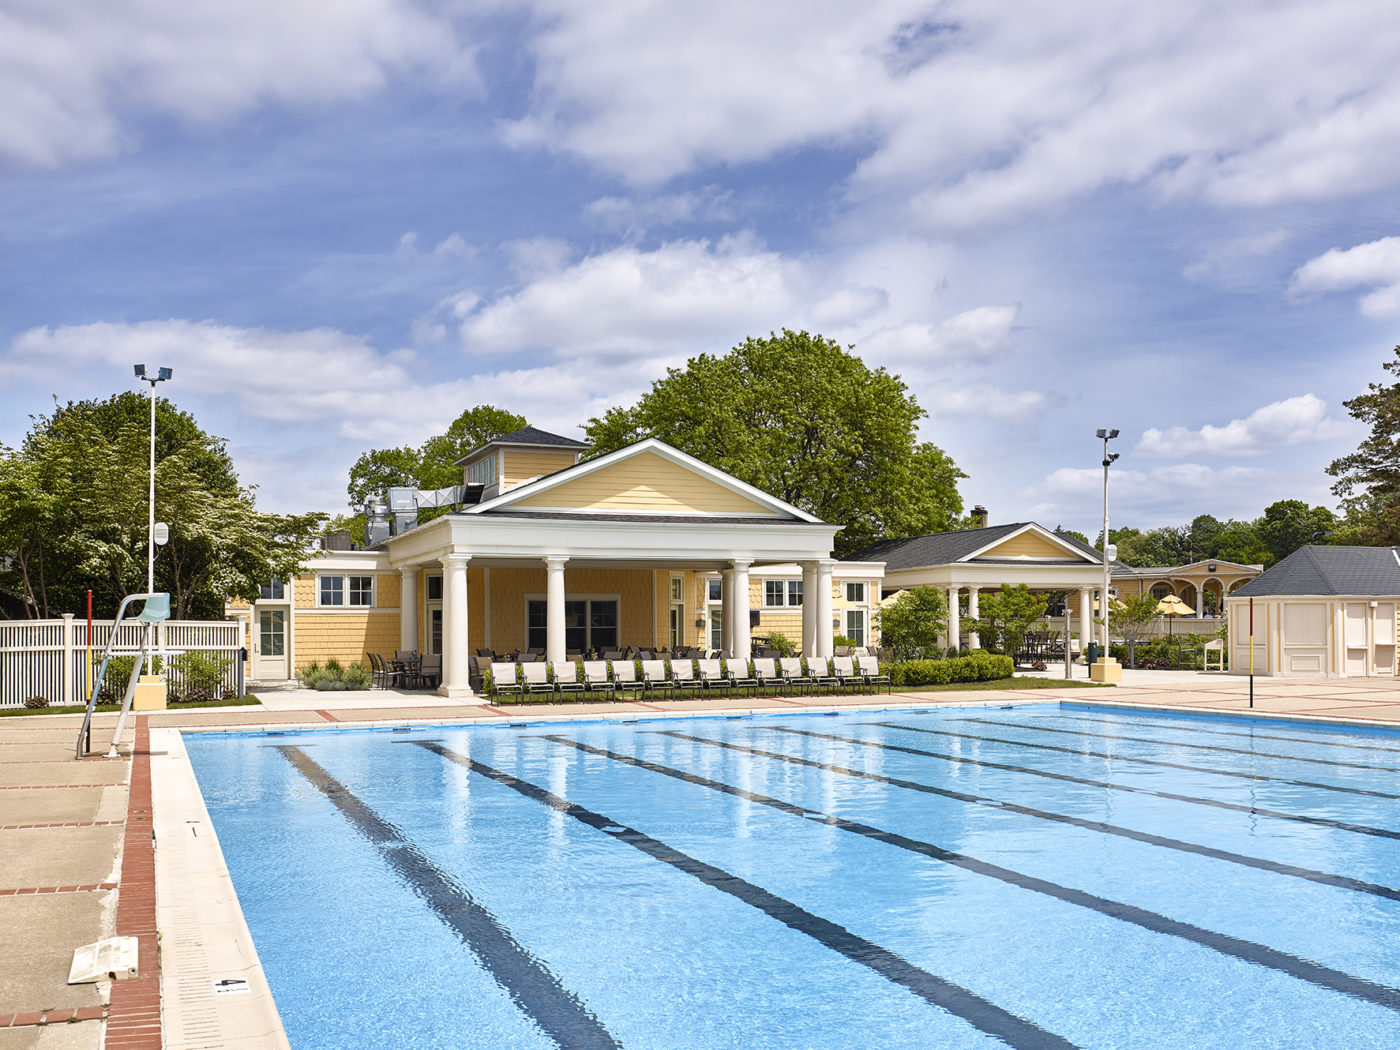 Philadelphia Cricket Club, Pool, Pool House & Snack Bar